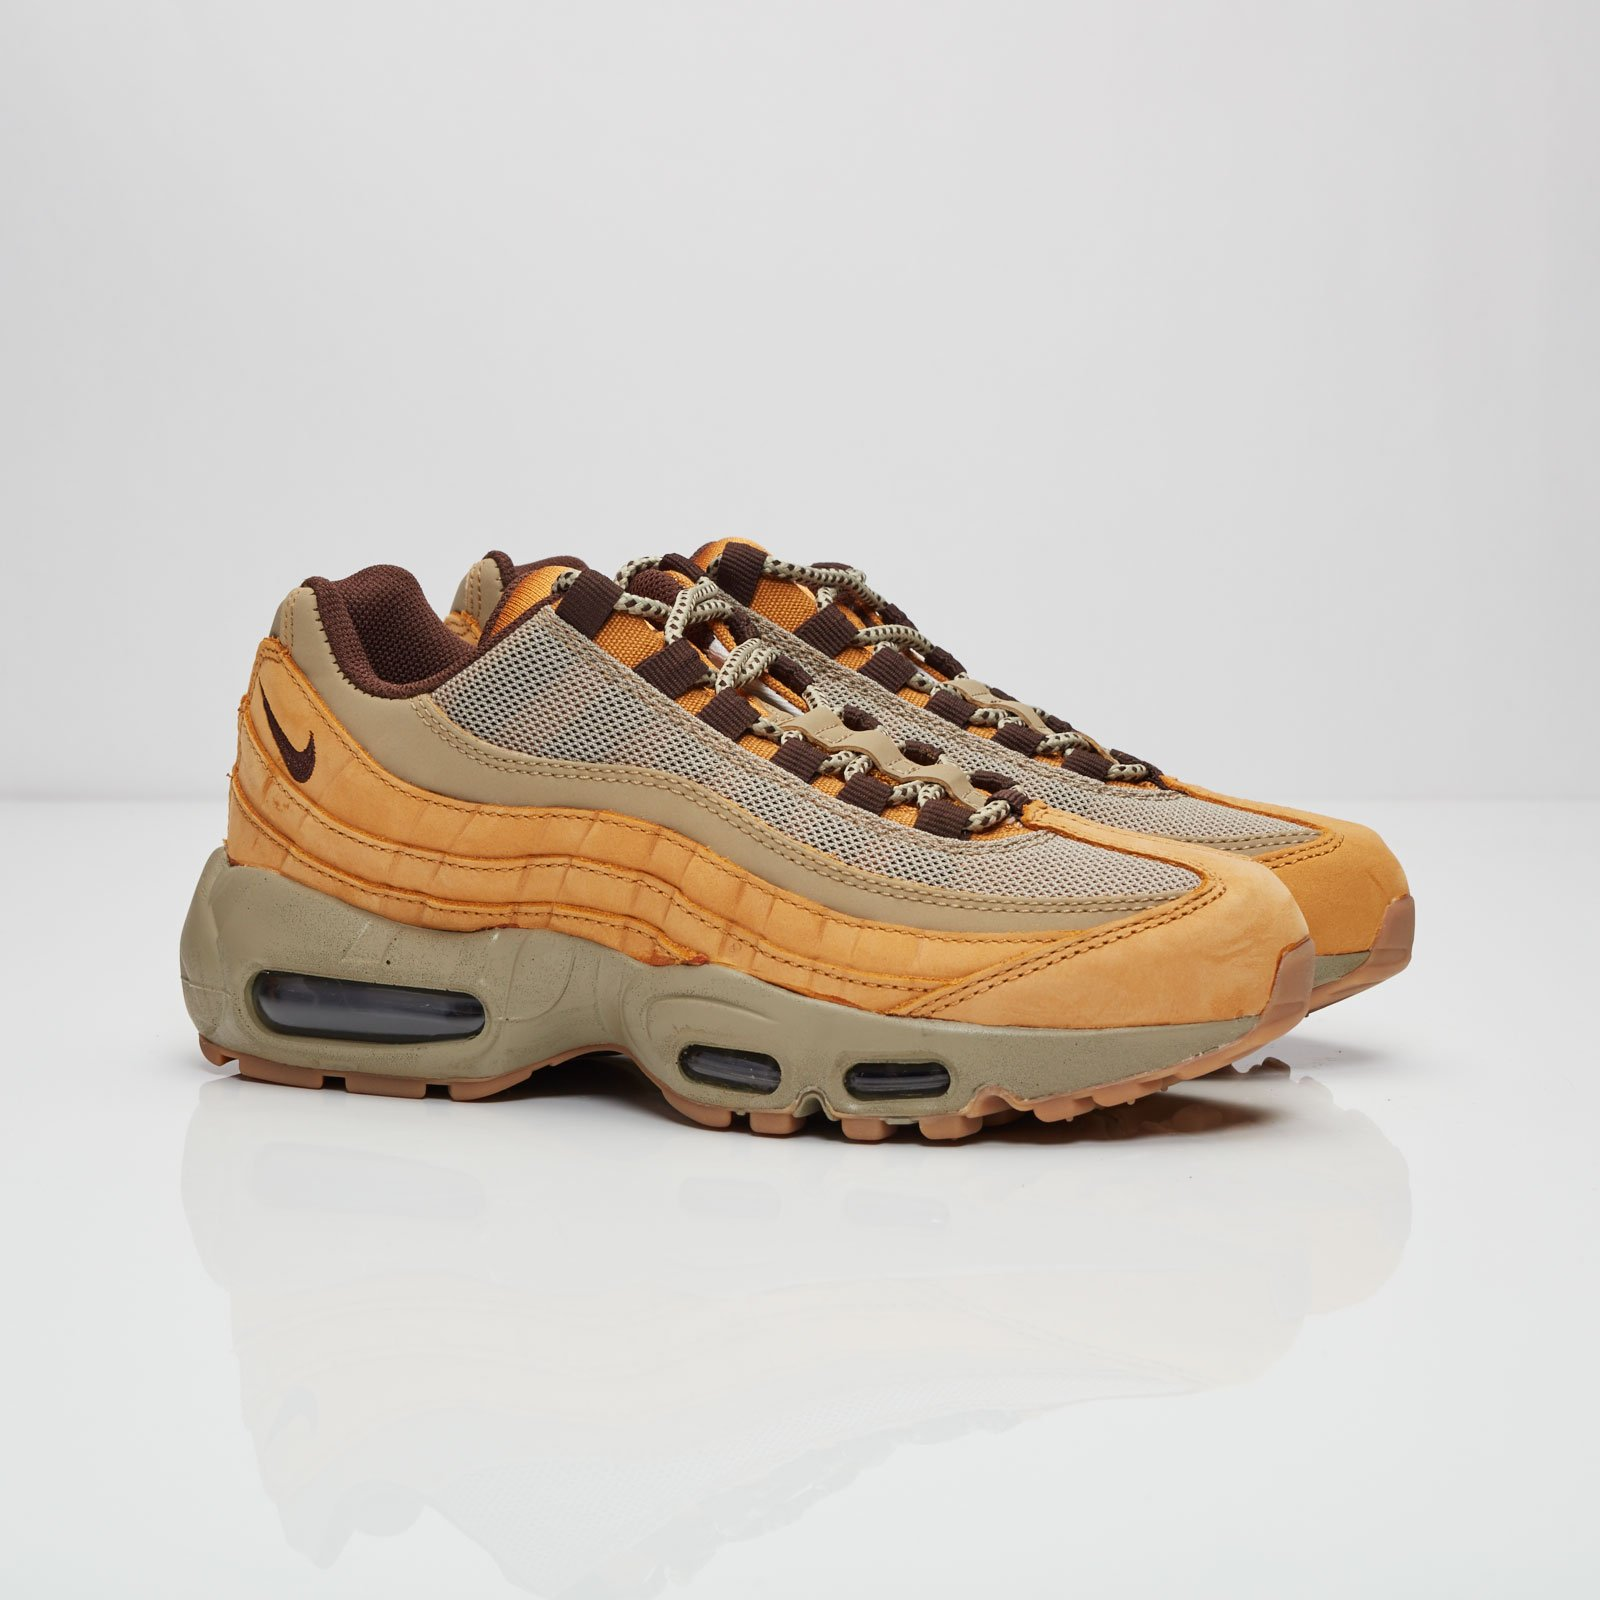 WMNS Air Max 95 Winter, Womens Trainers Nike